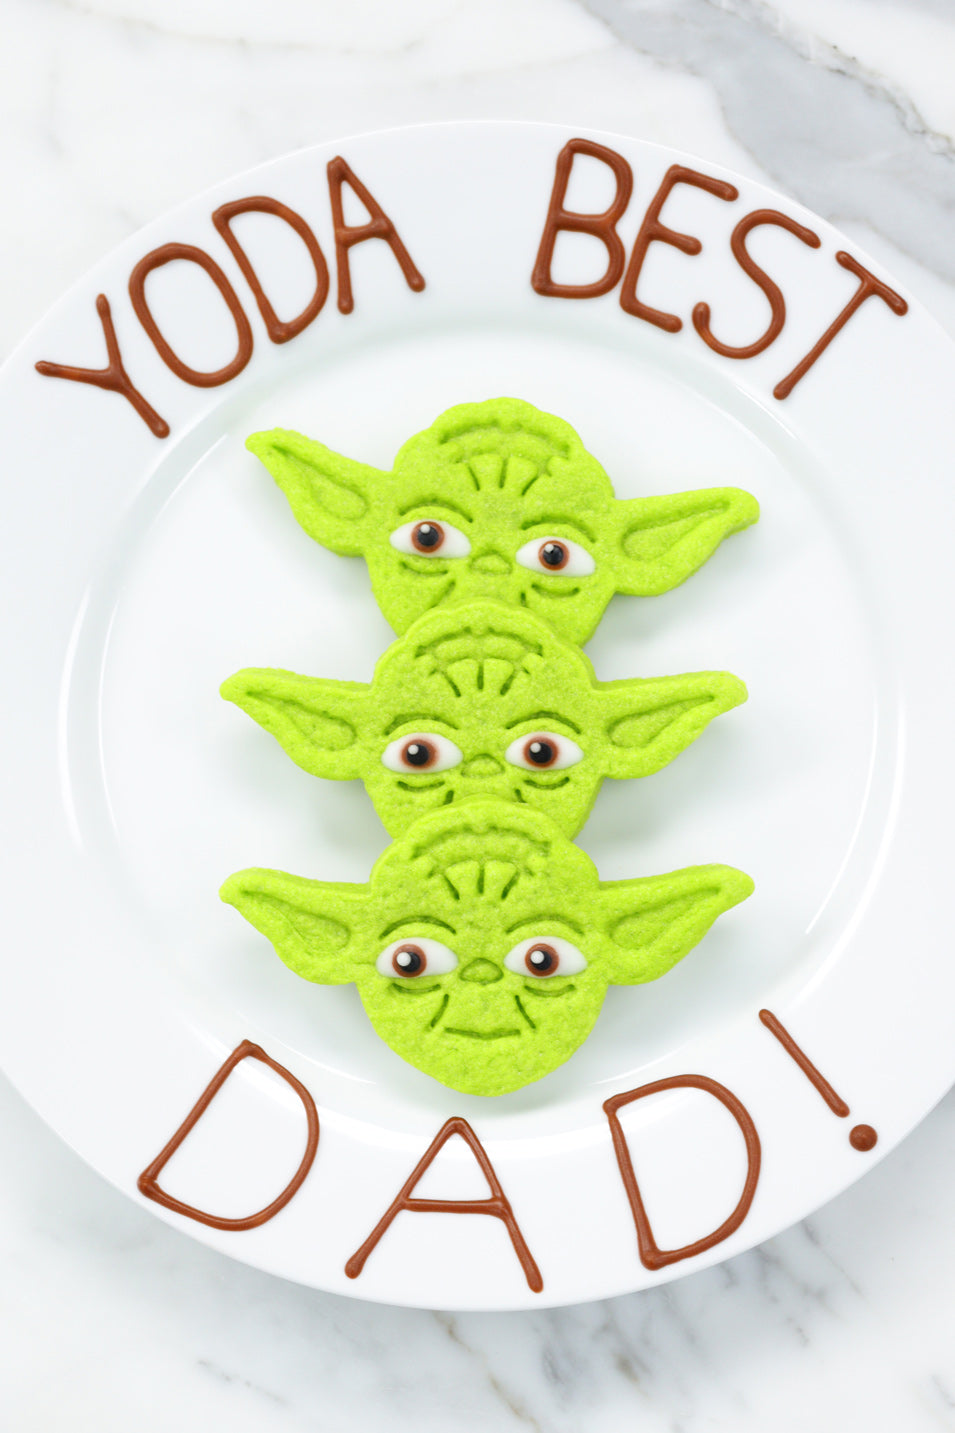 Yoda Cookies for Father's Day